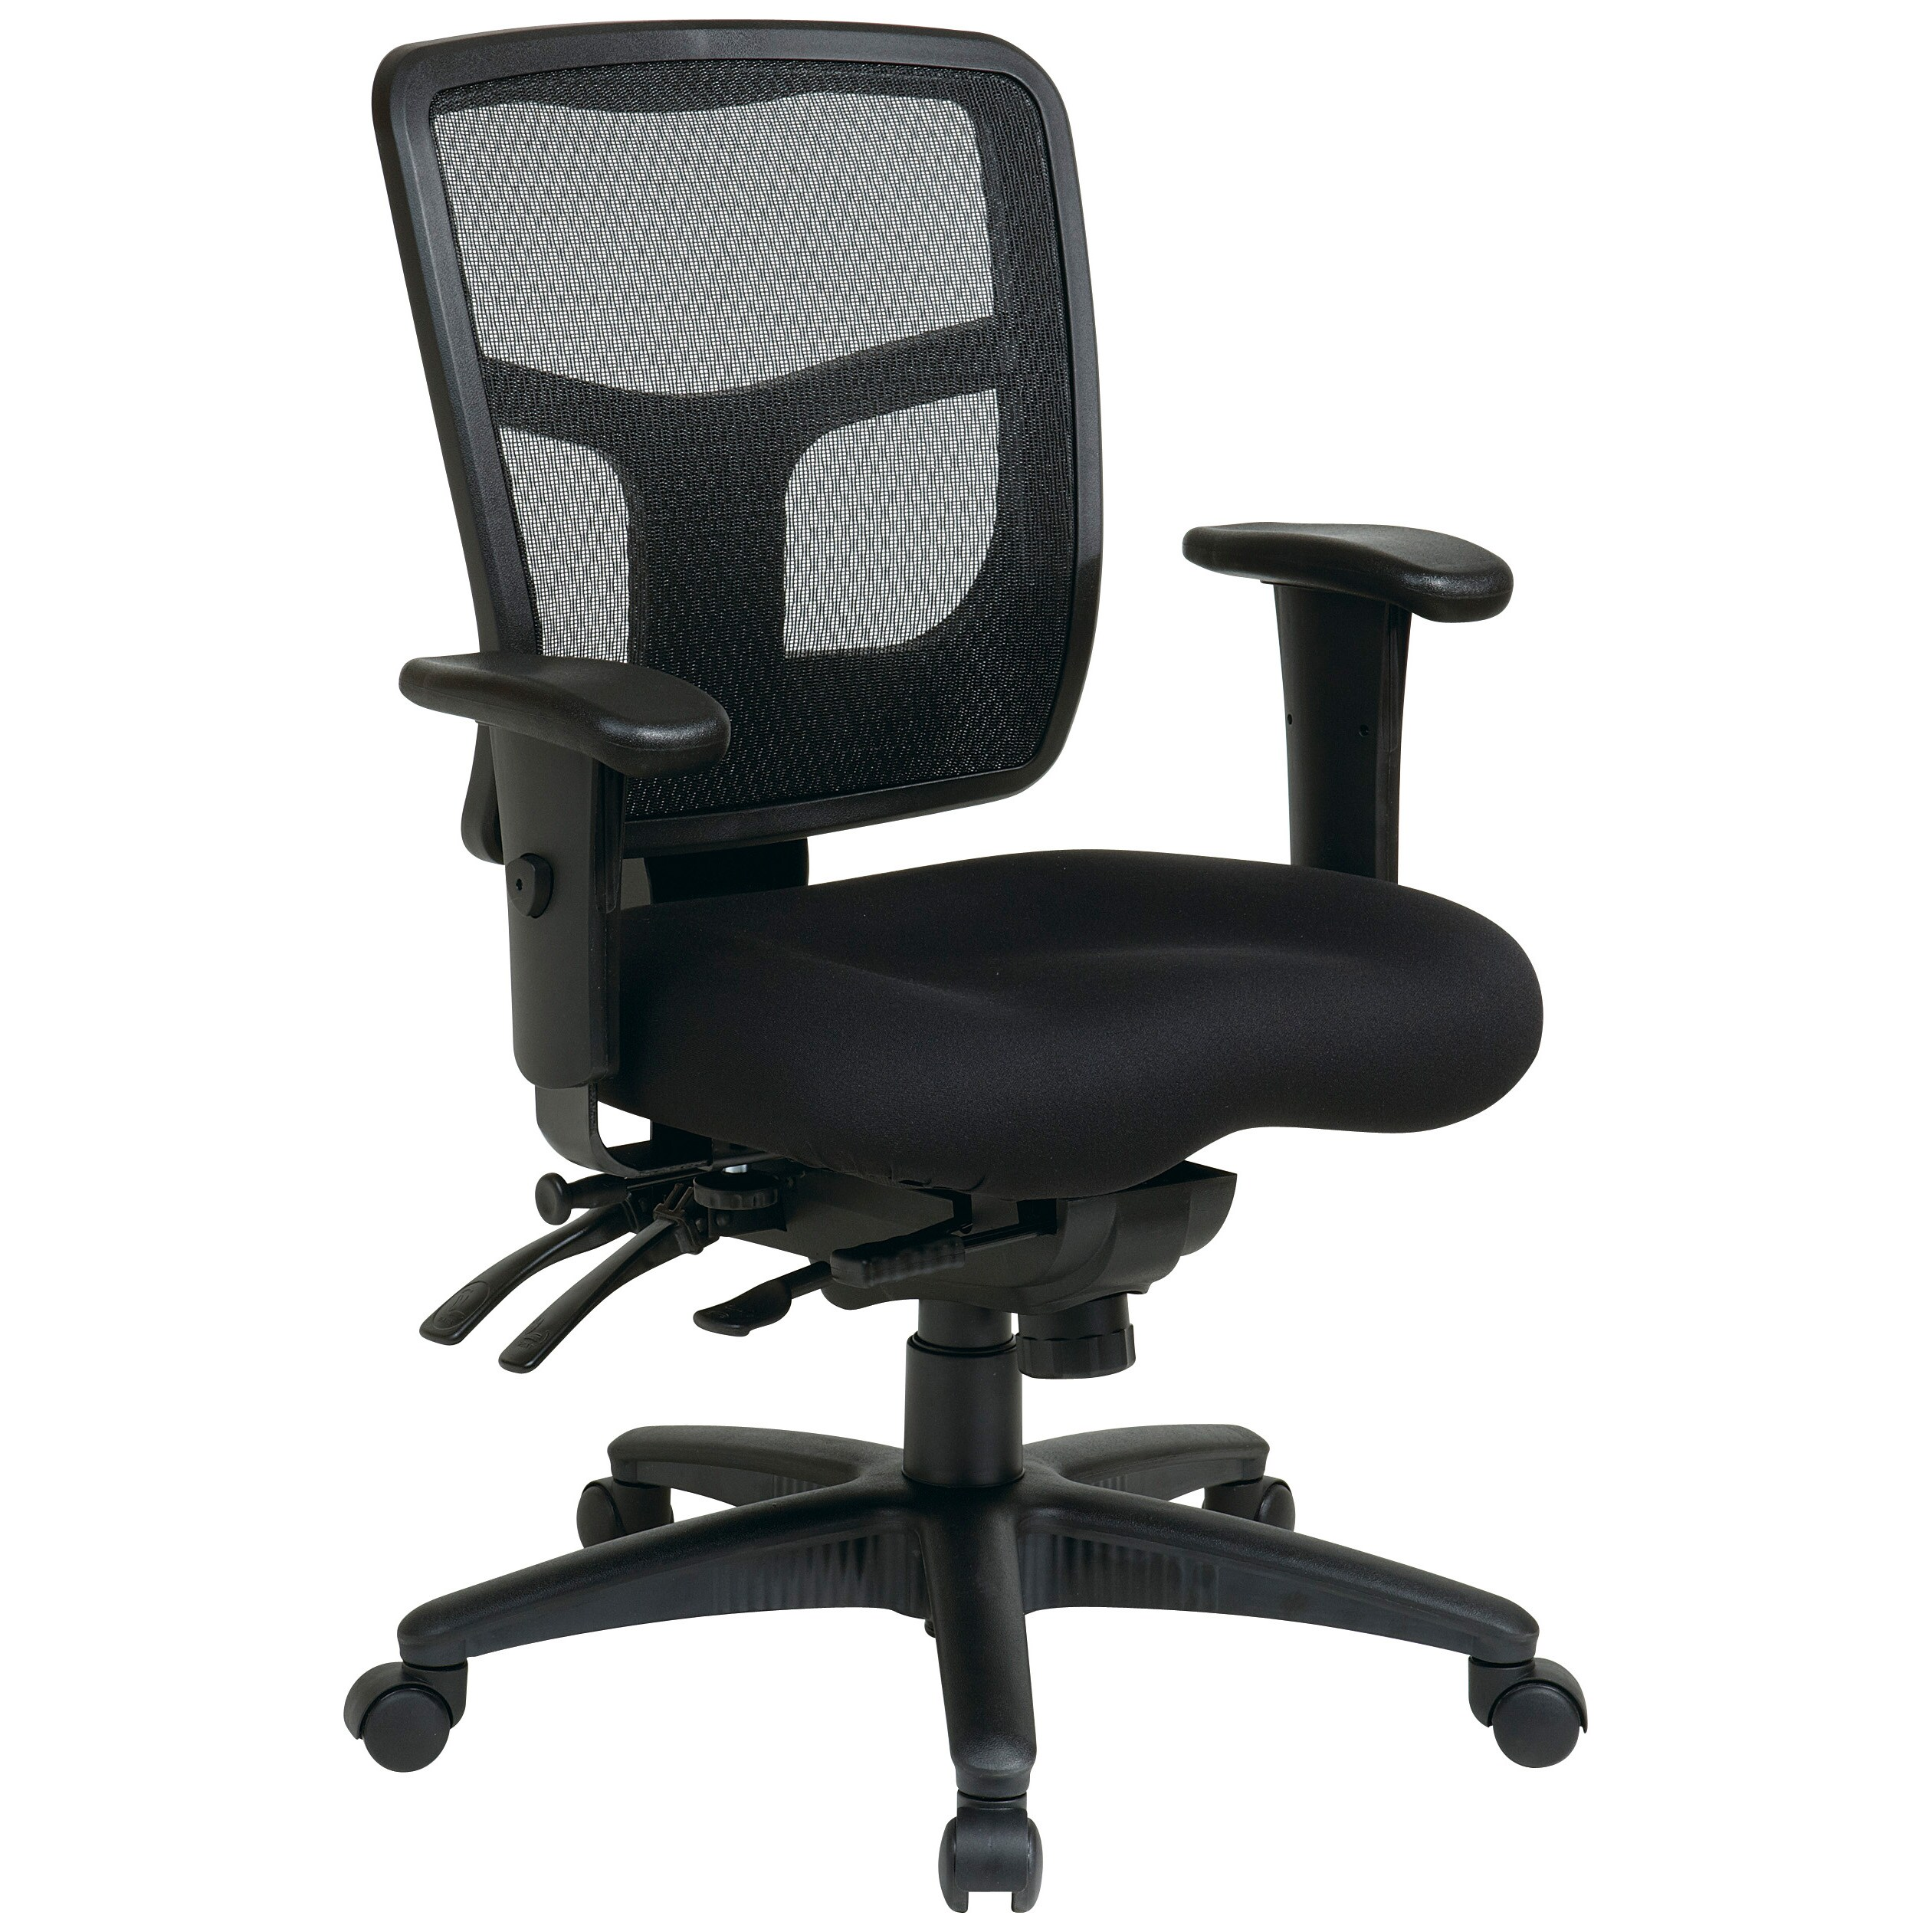 Office Star Pro-Line II ProGrid Black Padded Mesh Office Chair at Sears.com